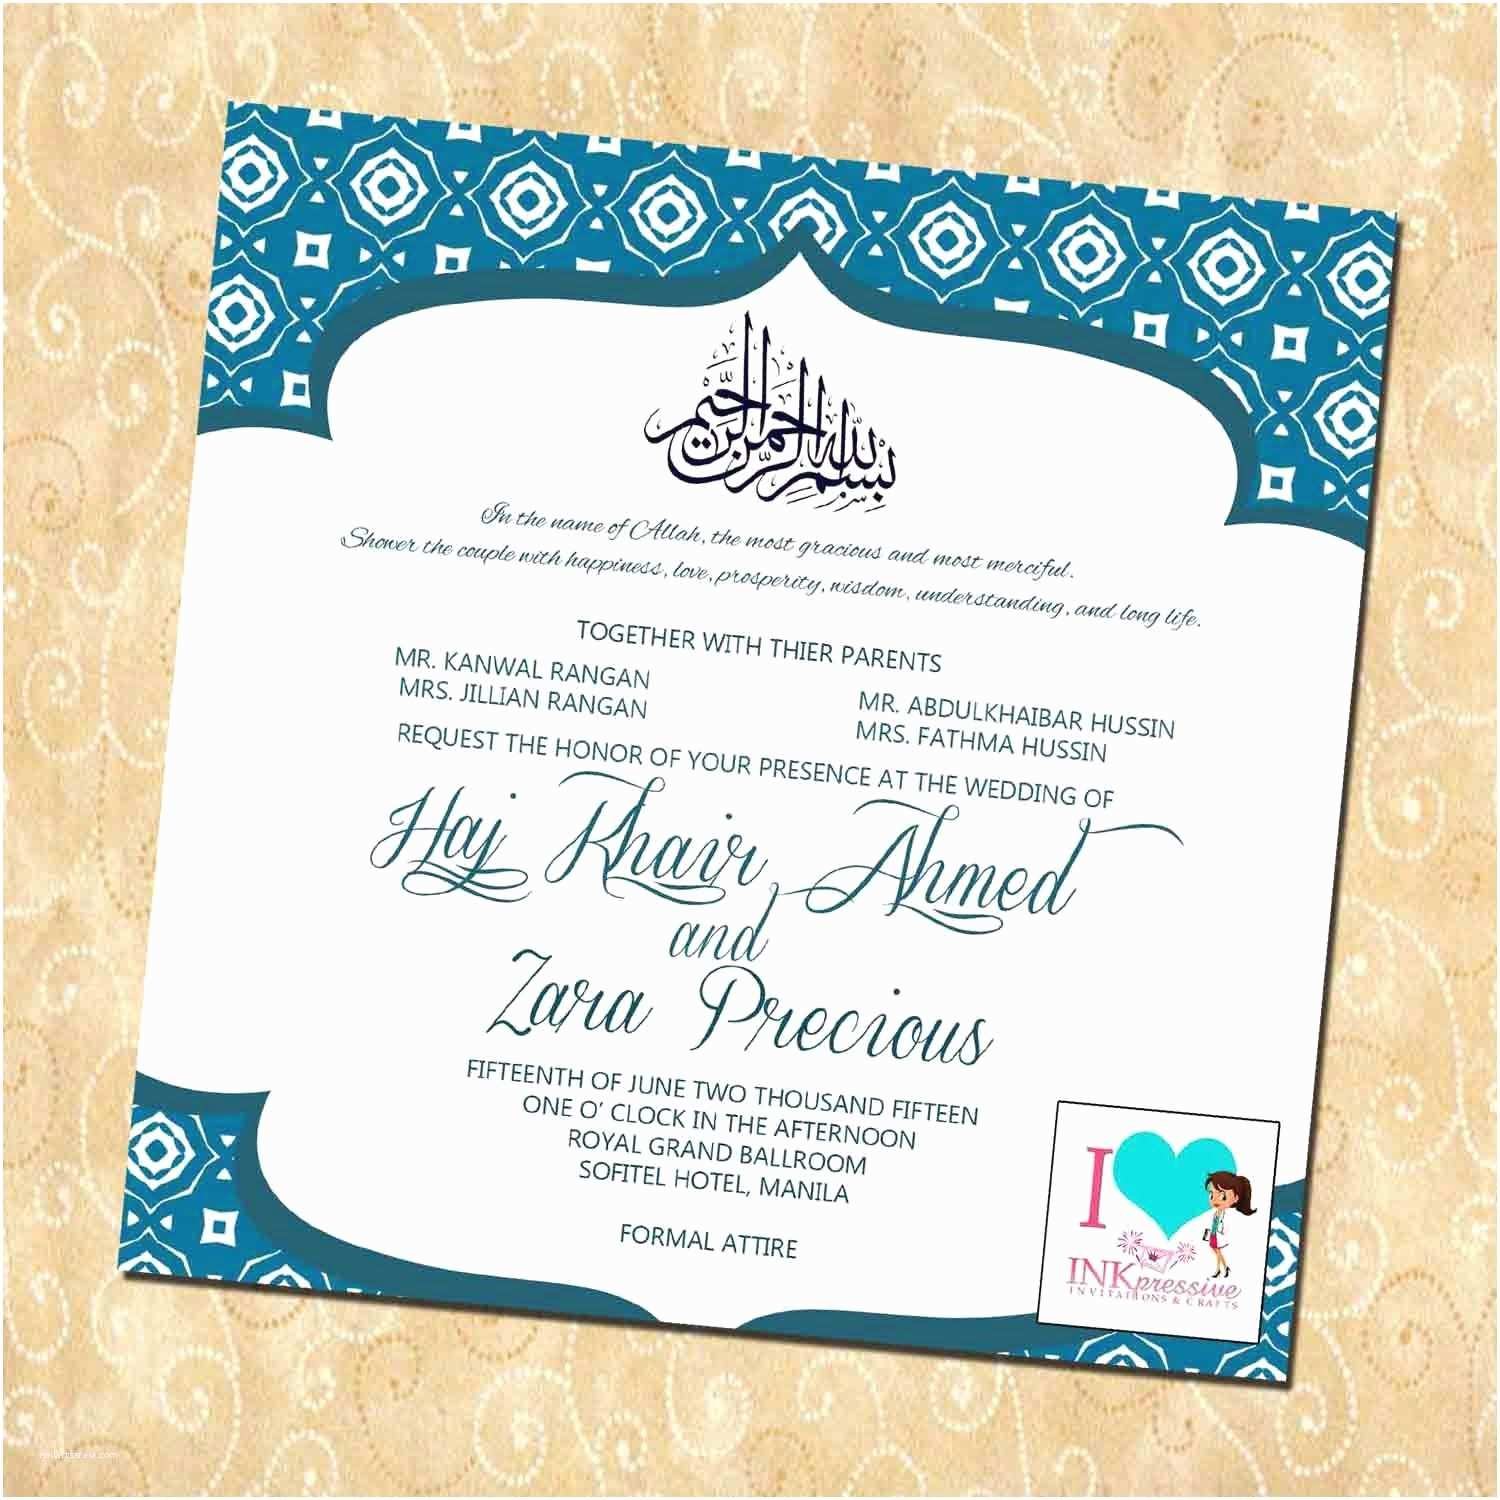 Wedding Invitation Cards Invitation Cards Samples Invitation Cards Templates Free